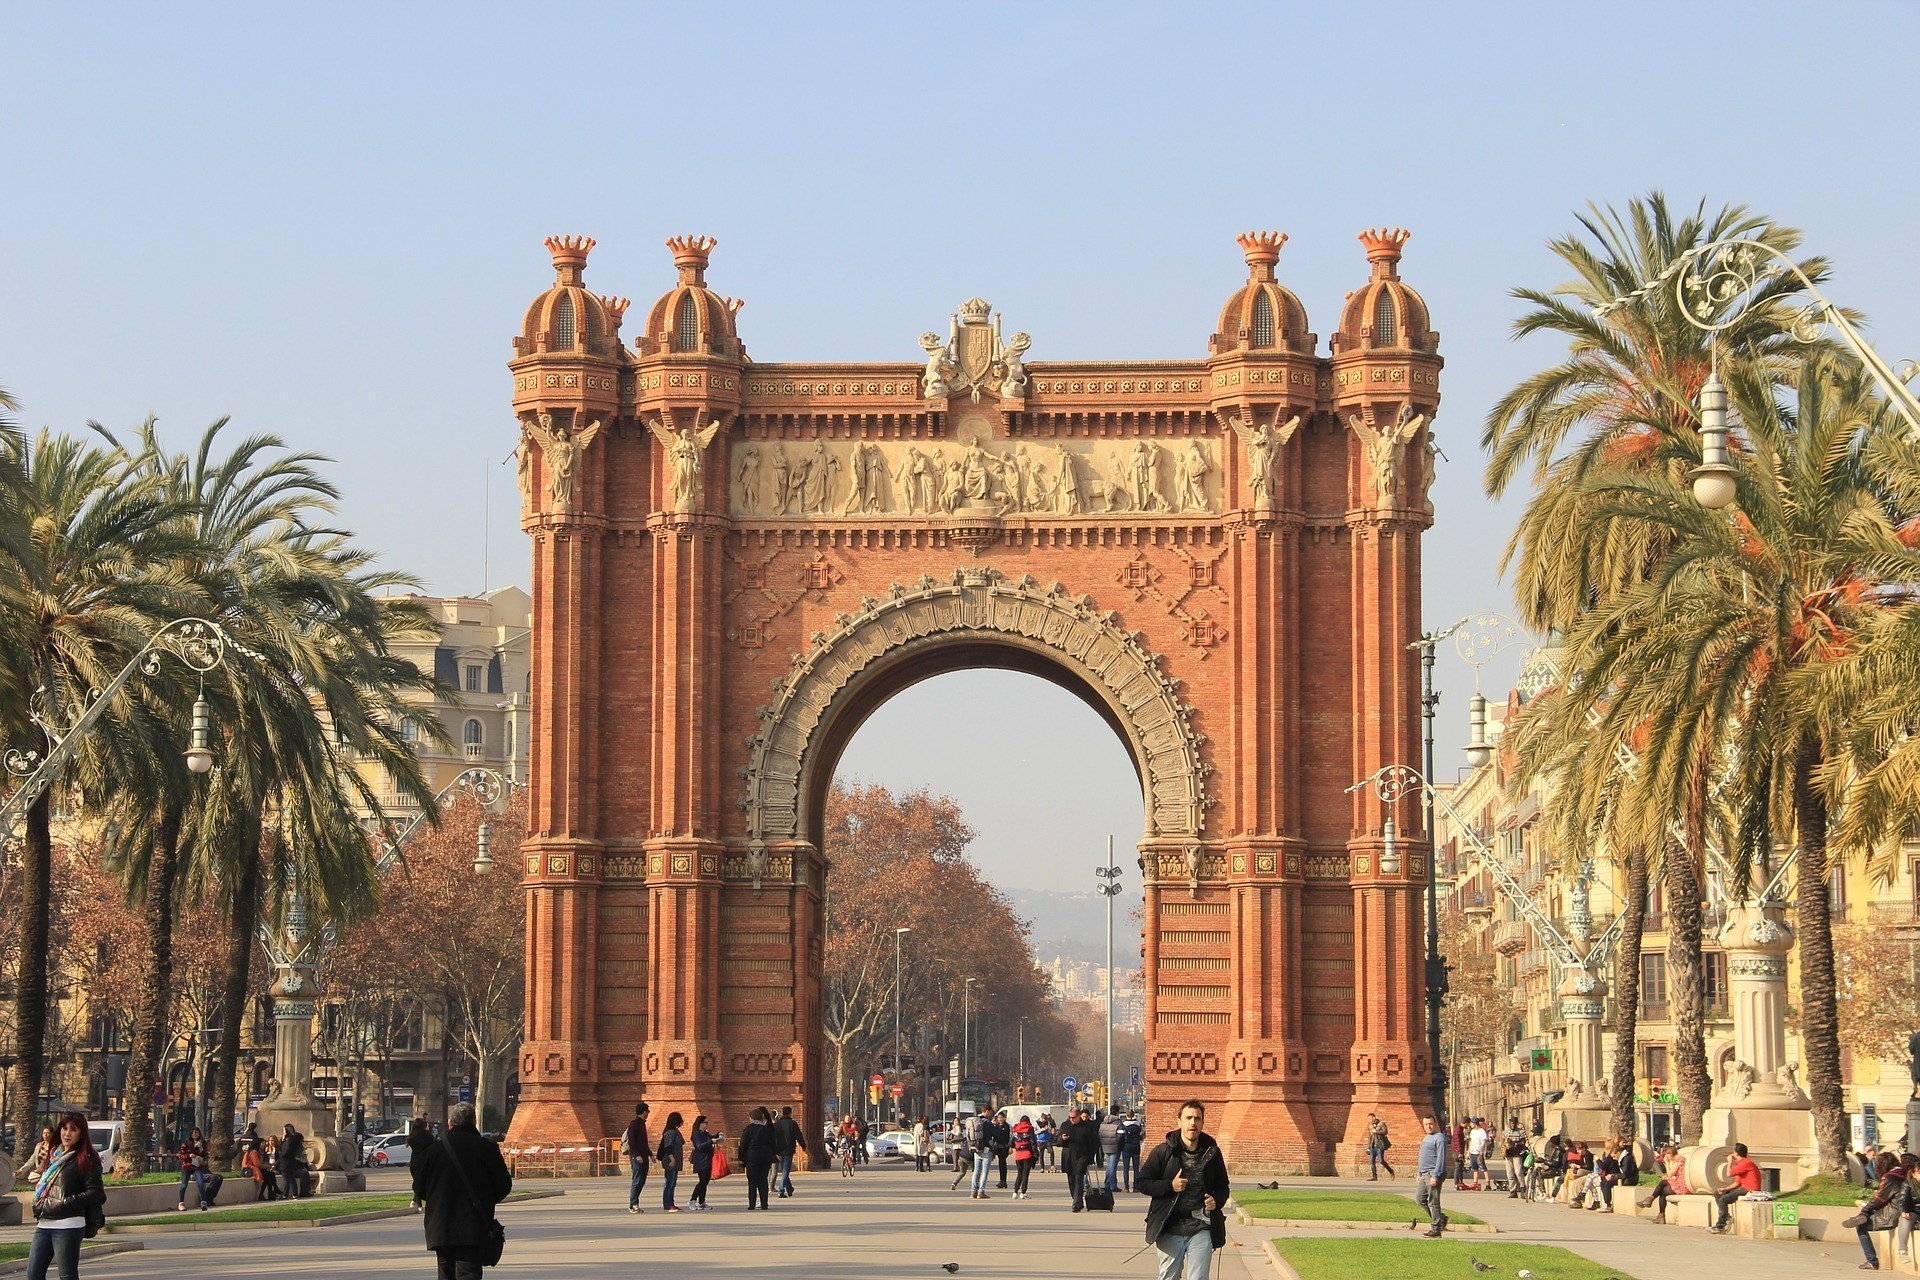 Visiting Barcelona: 5 Places Not to Miss - Arco Triunfo